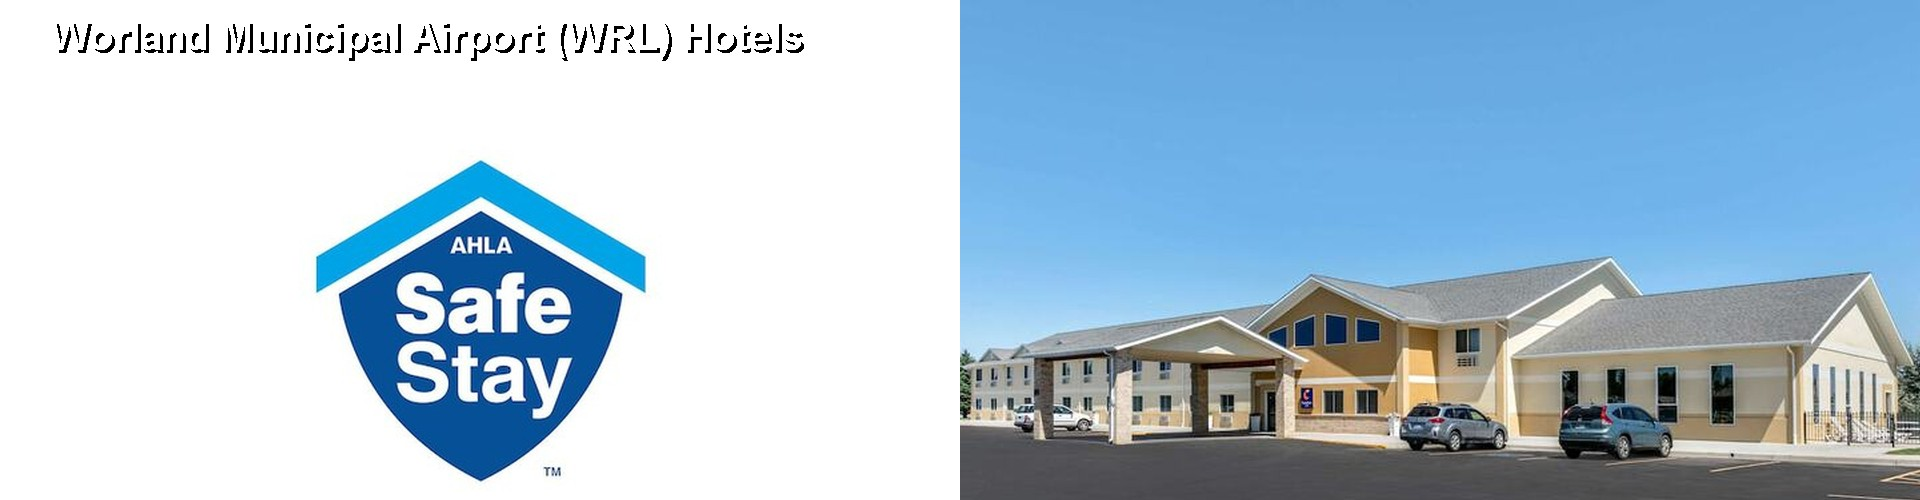 2 Best Hotels Near Worland Munil Airport Wrl